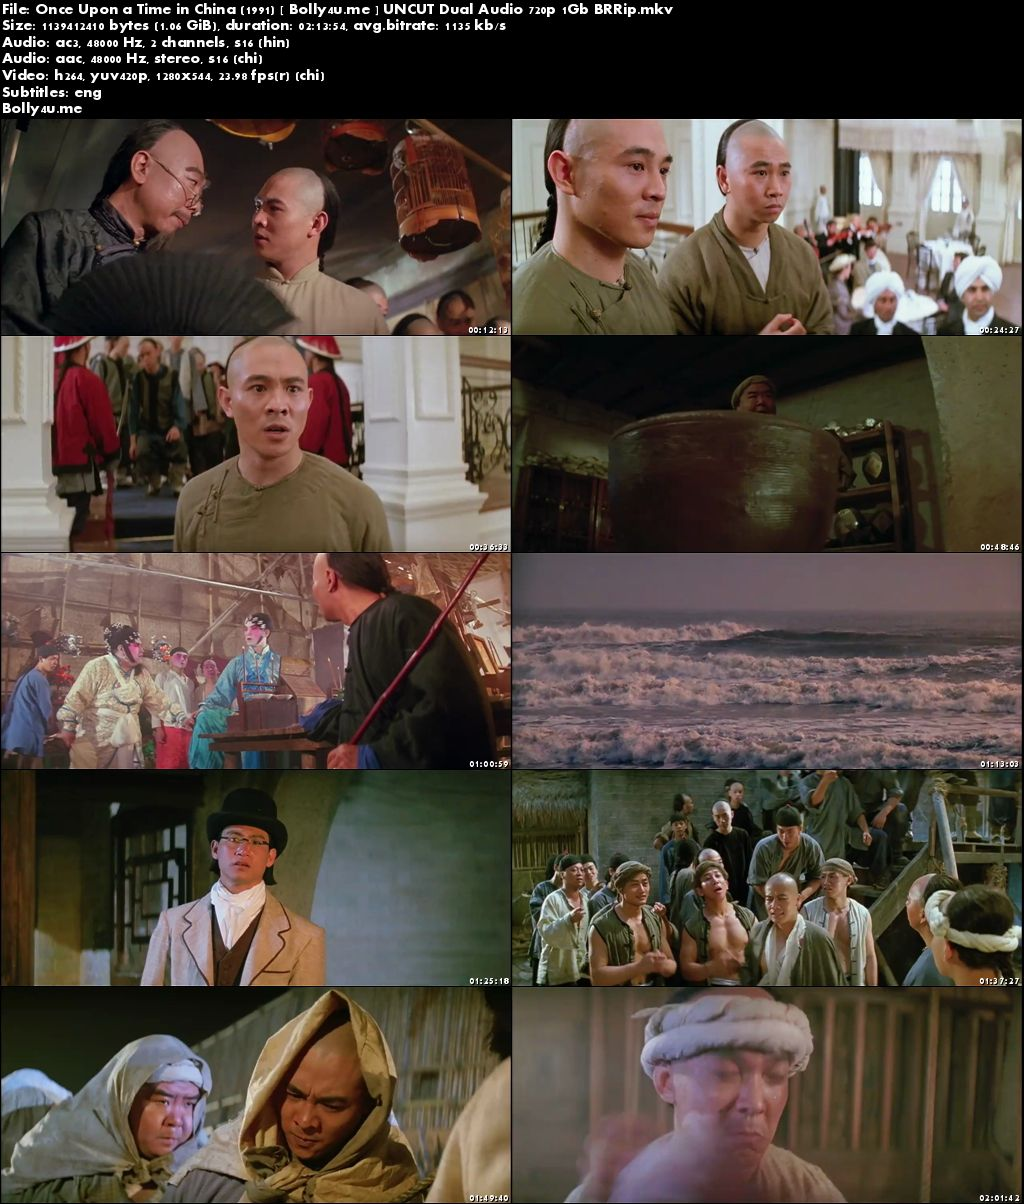 Once Upon a Time in China 1991 UNCUT BRRip 1GB Hindi Dual Audio 720p Download